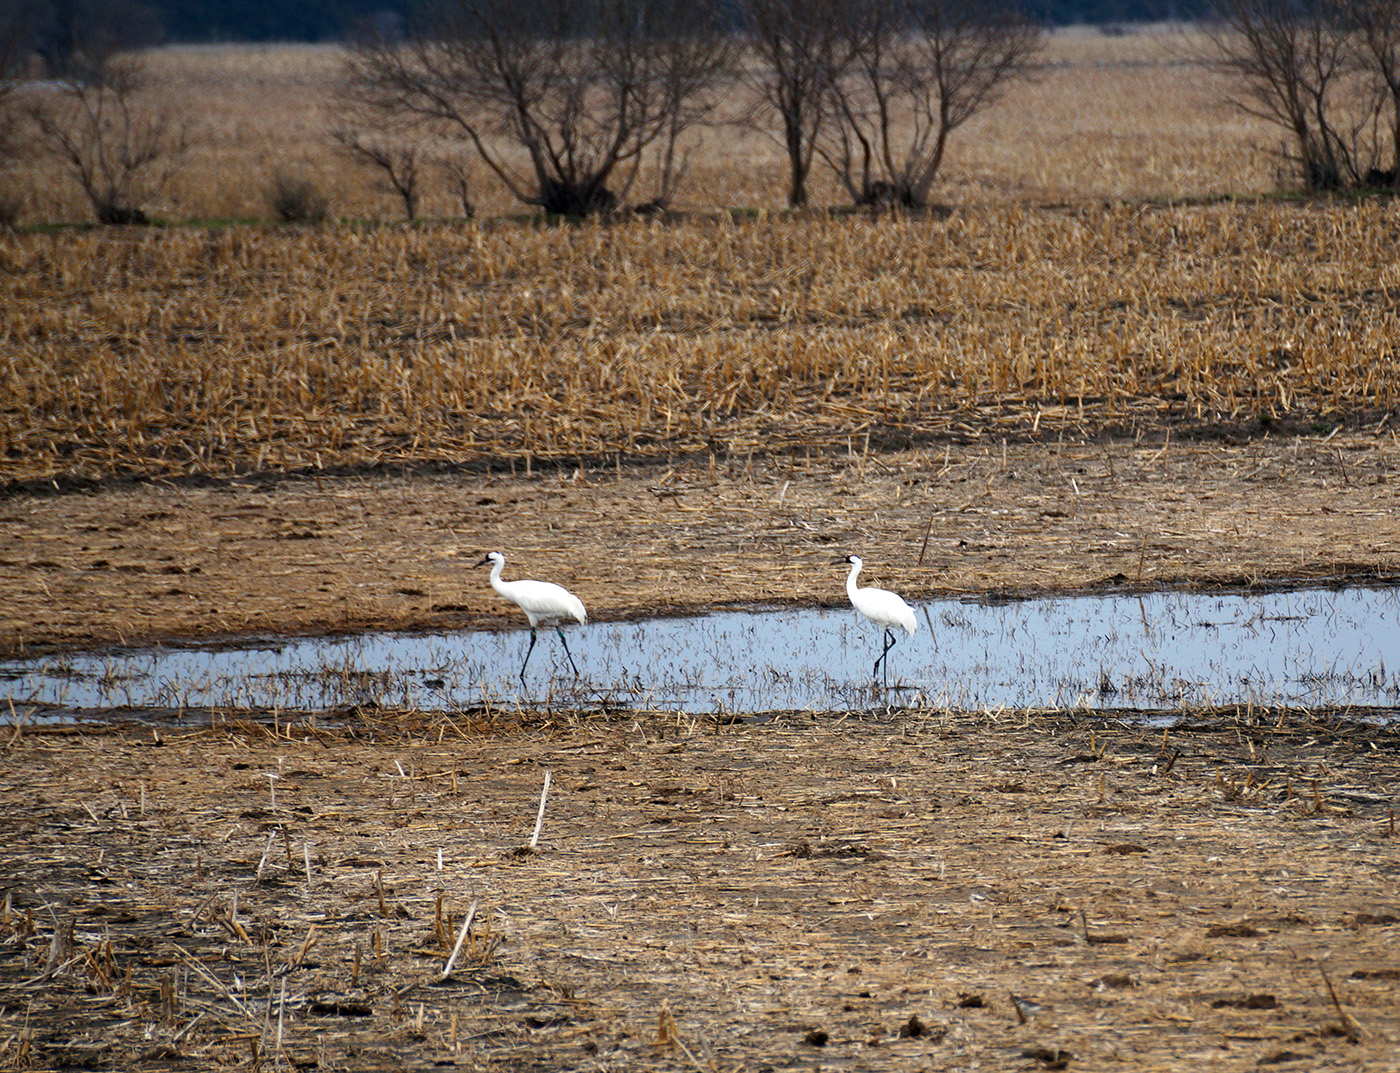 Whooping cranes utilize Nebraska fields during their migration. | Image courtesy Mary Bomberger Brown, SNR